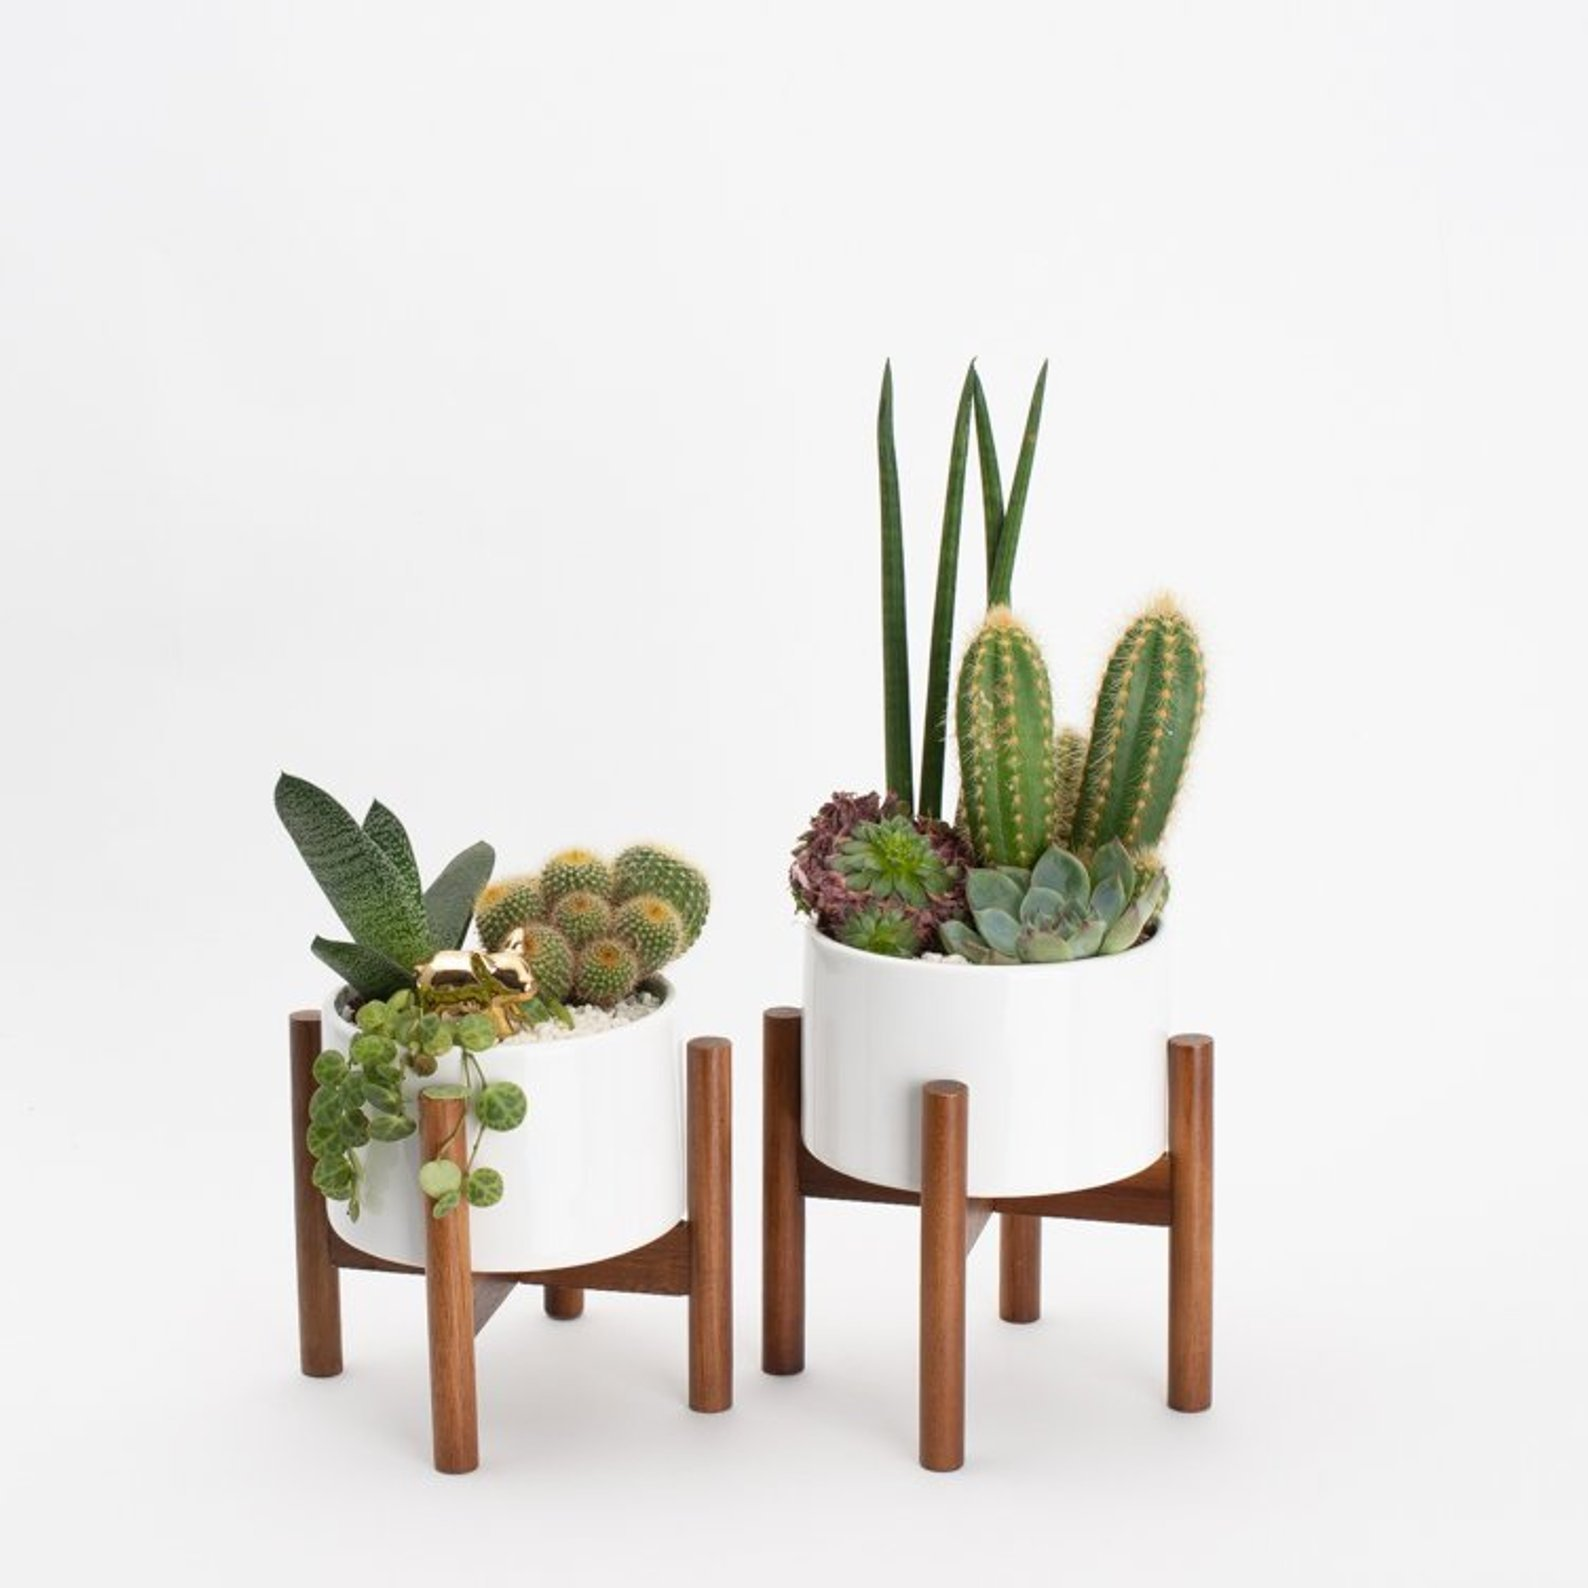 2 mid century modern style wood plant stands with ceramic planters filled with succulents and cacti